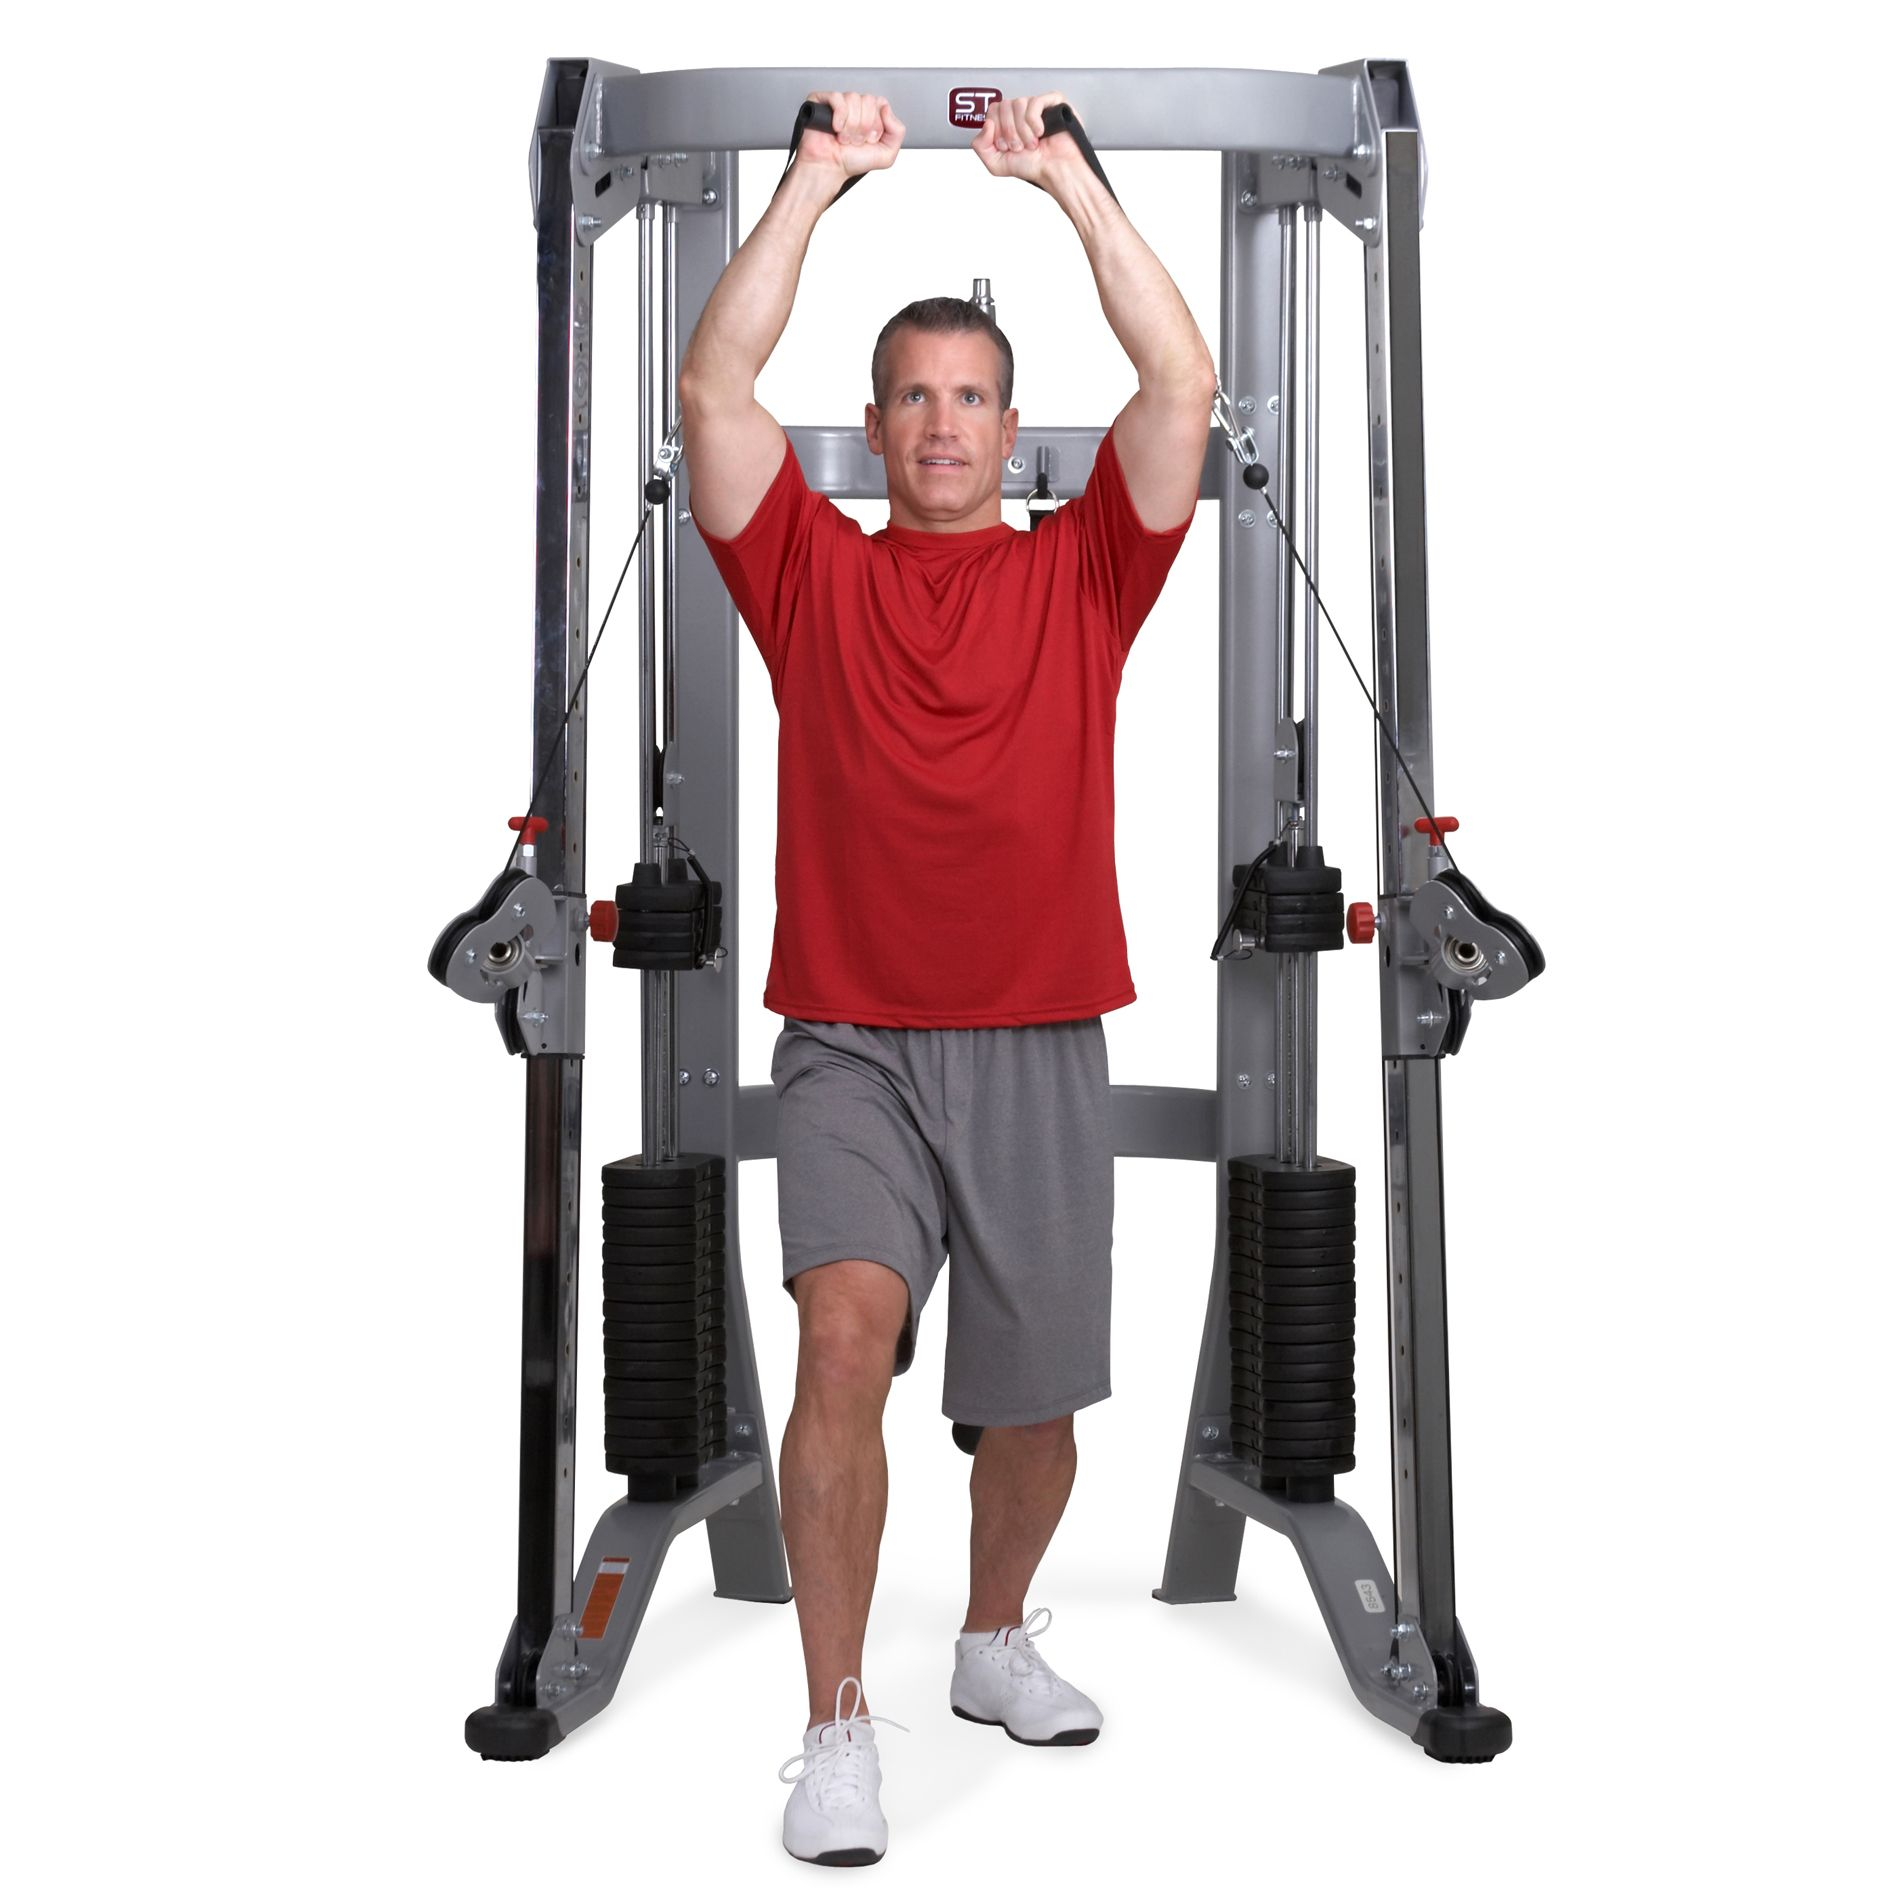 Star Trac Fitness 8543 Functional Trainer